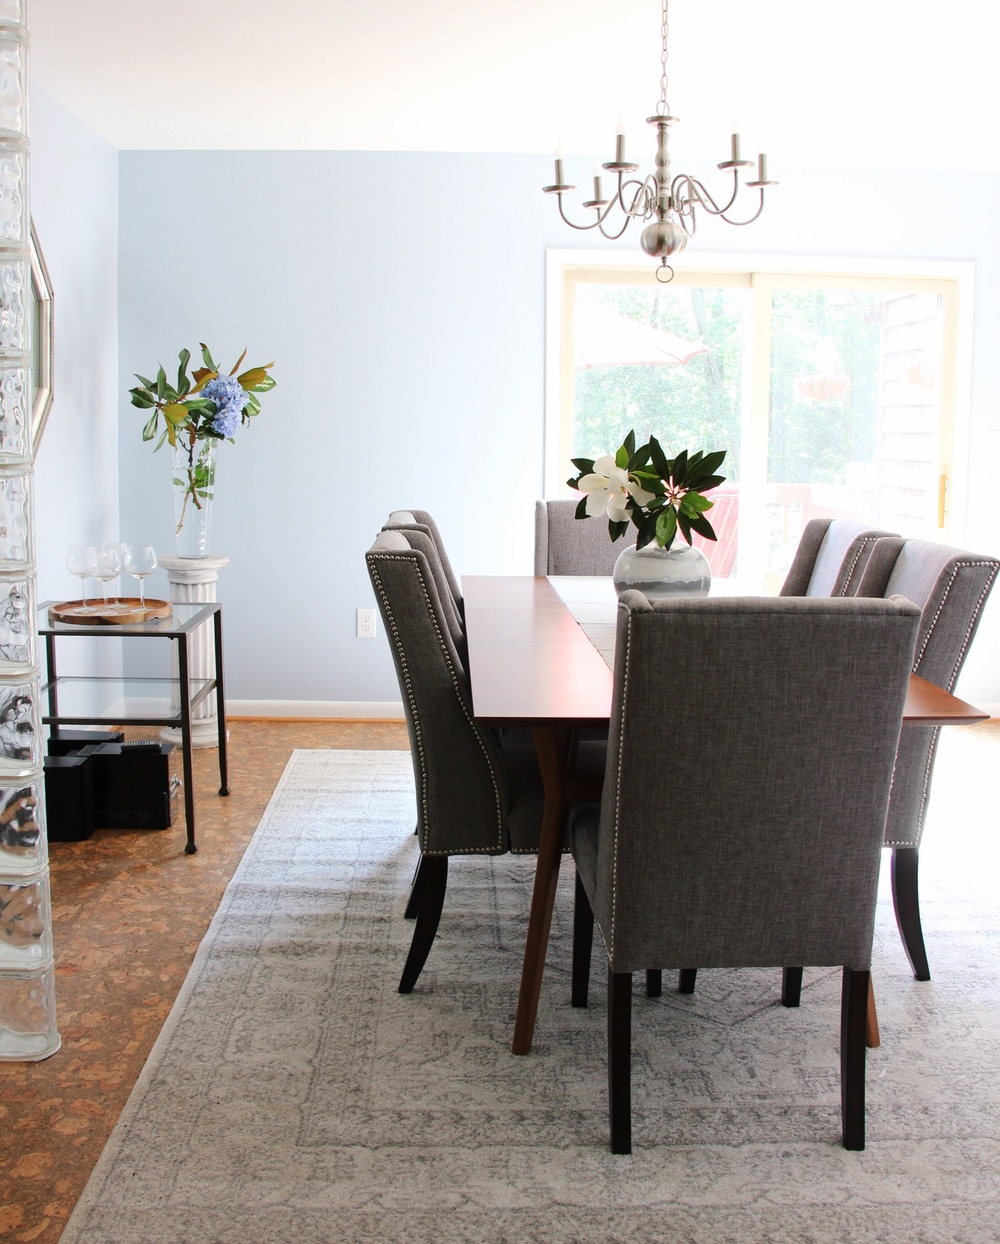 A classic rug in grays defines the dining room area and dresses up the space.